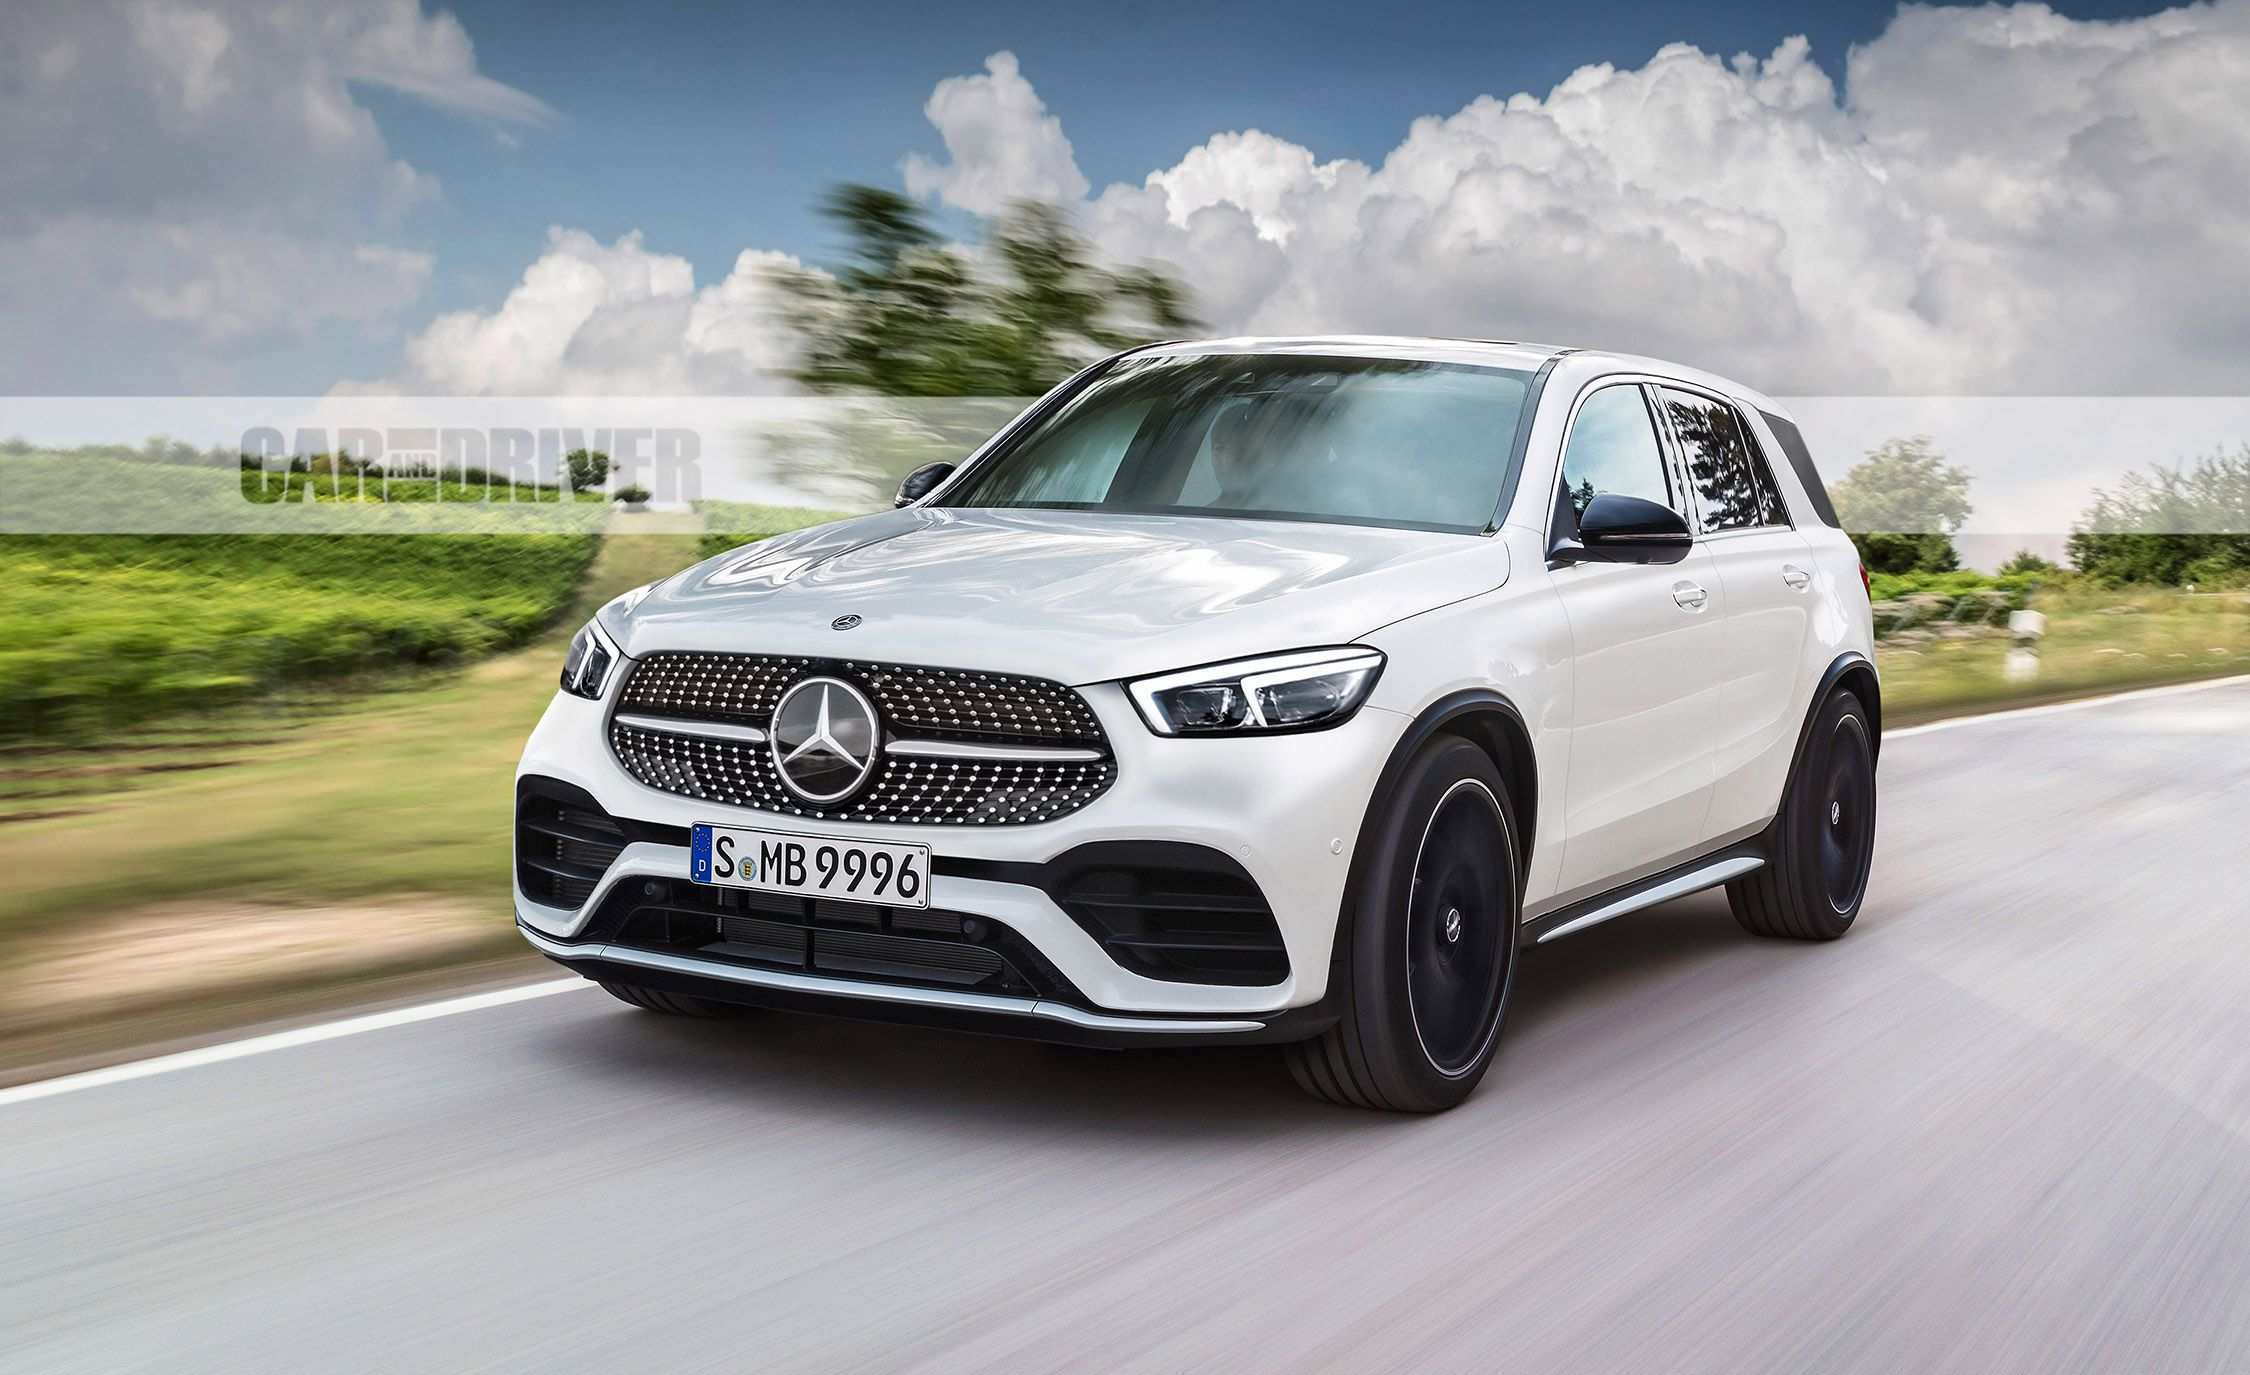 17 All New Jeep Mercedes Benz 2019 Redesign And Concept Wallpaper by Jeep Mercedes Benz 2019 Redesign And Concept